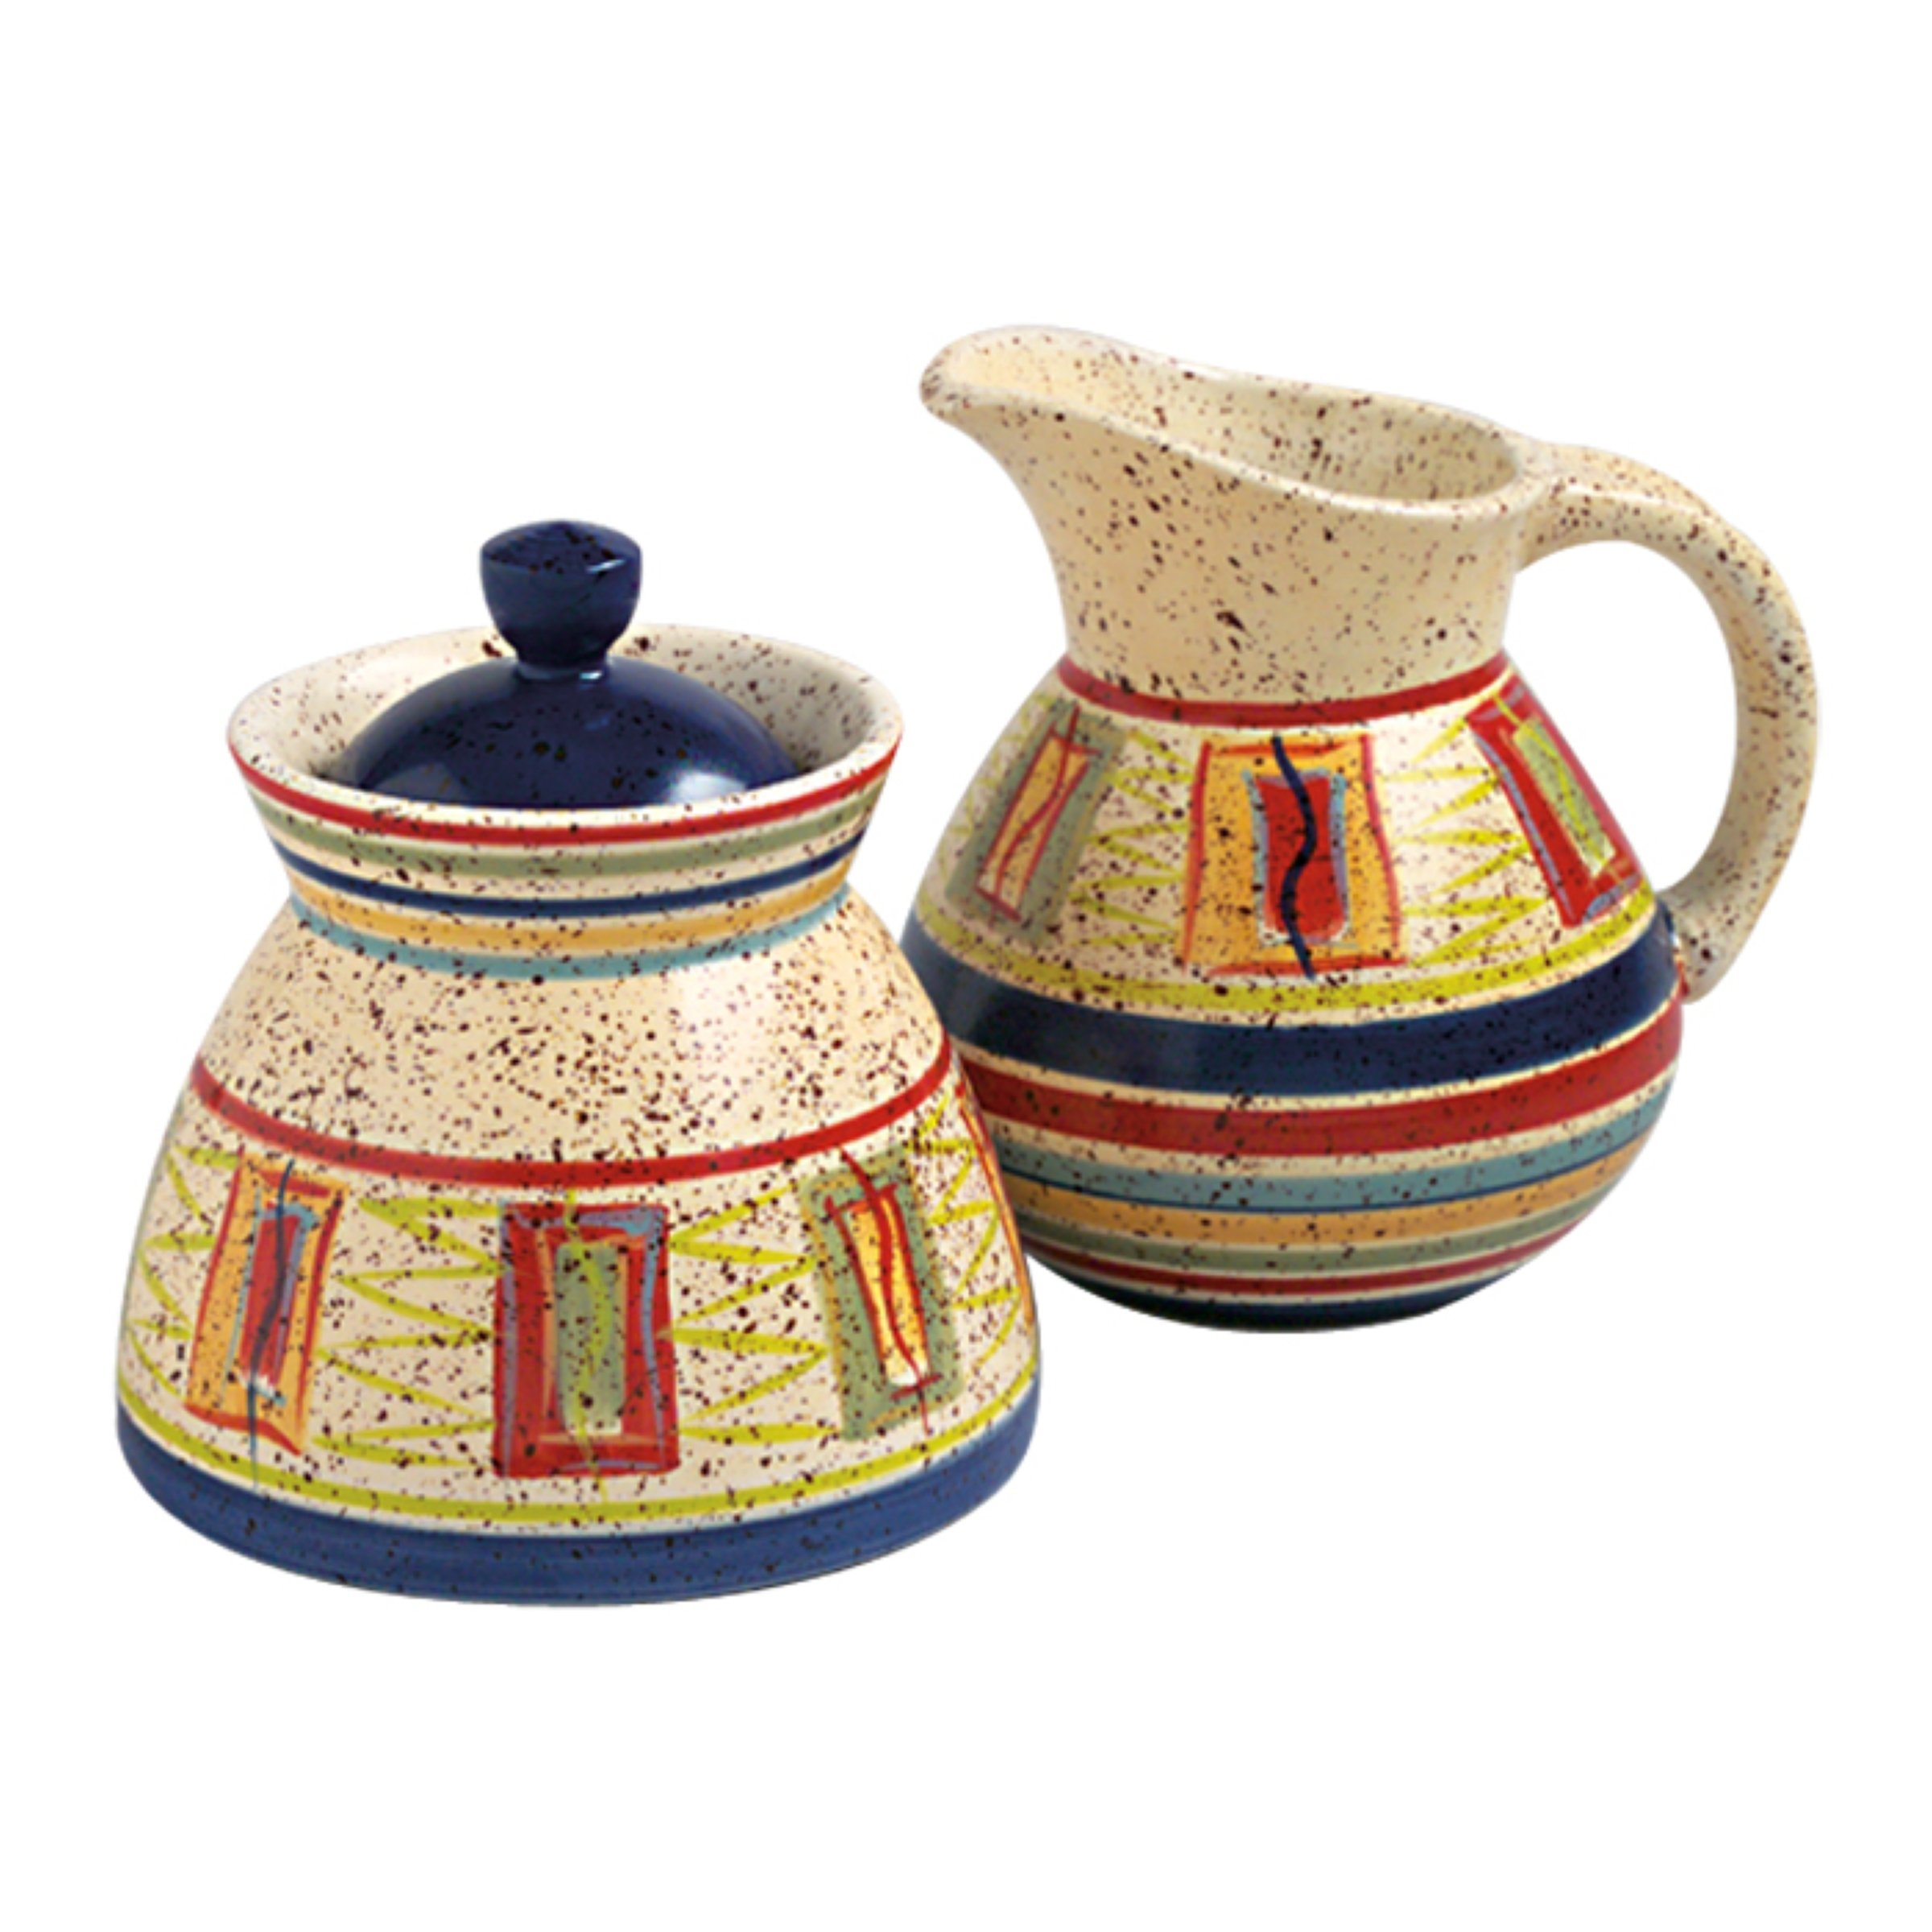 Pfaltzgraff Sedona Sugar and Creamer Set